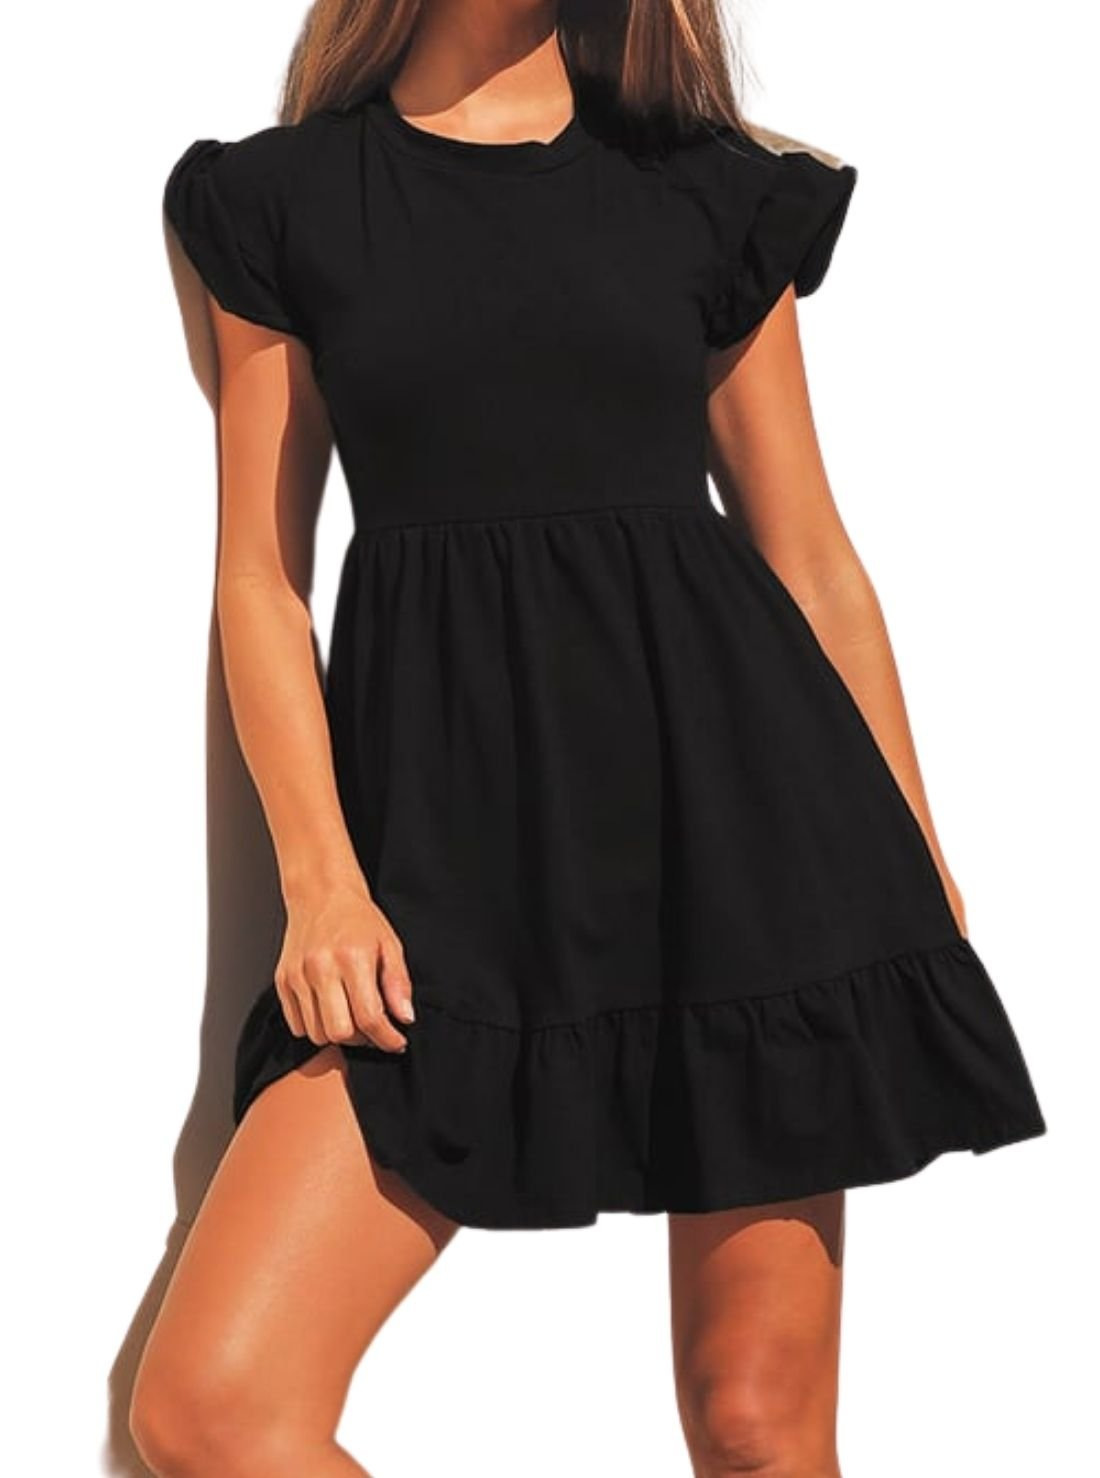 Sweetest Style Black Tiered Babydoll Dress